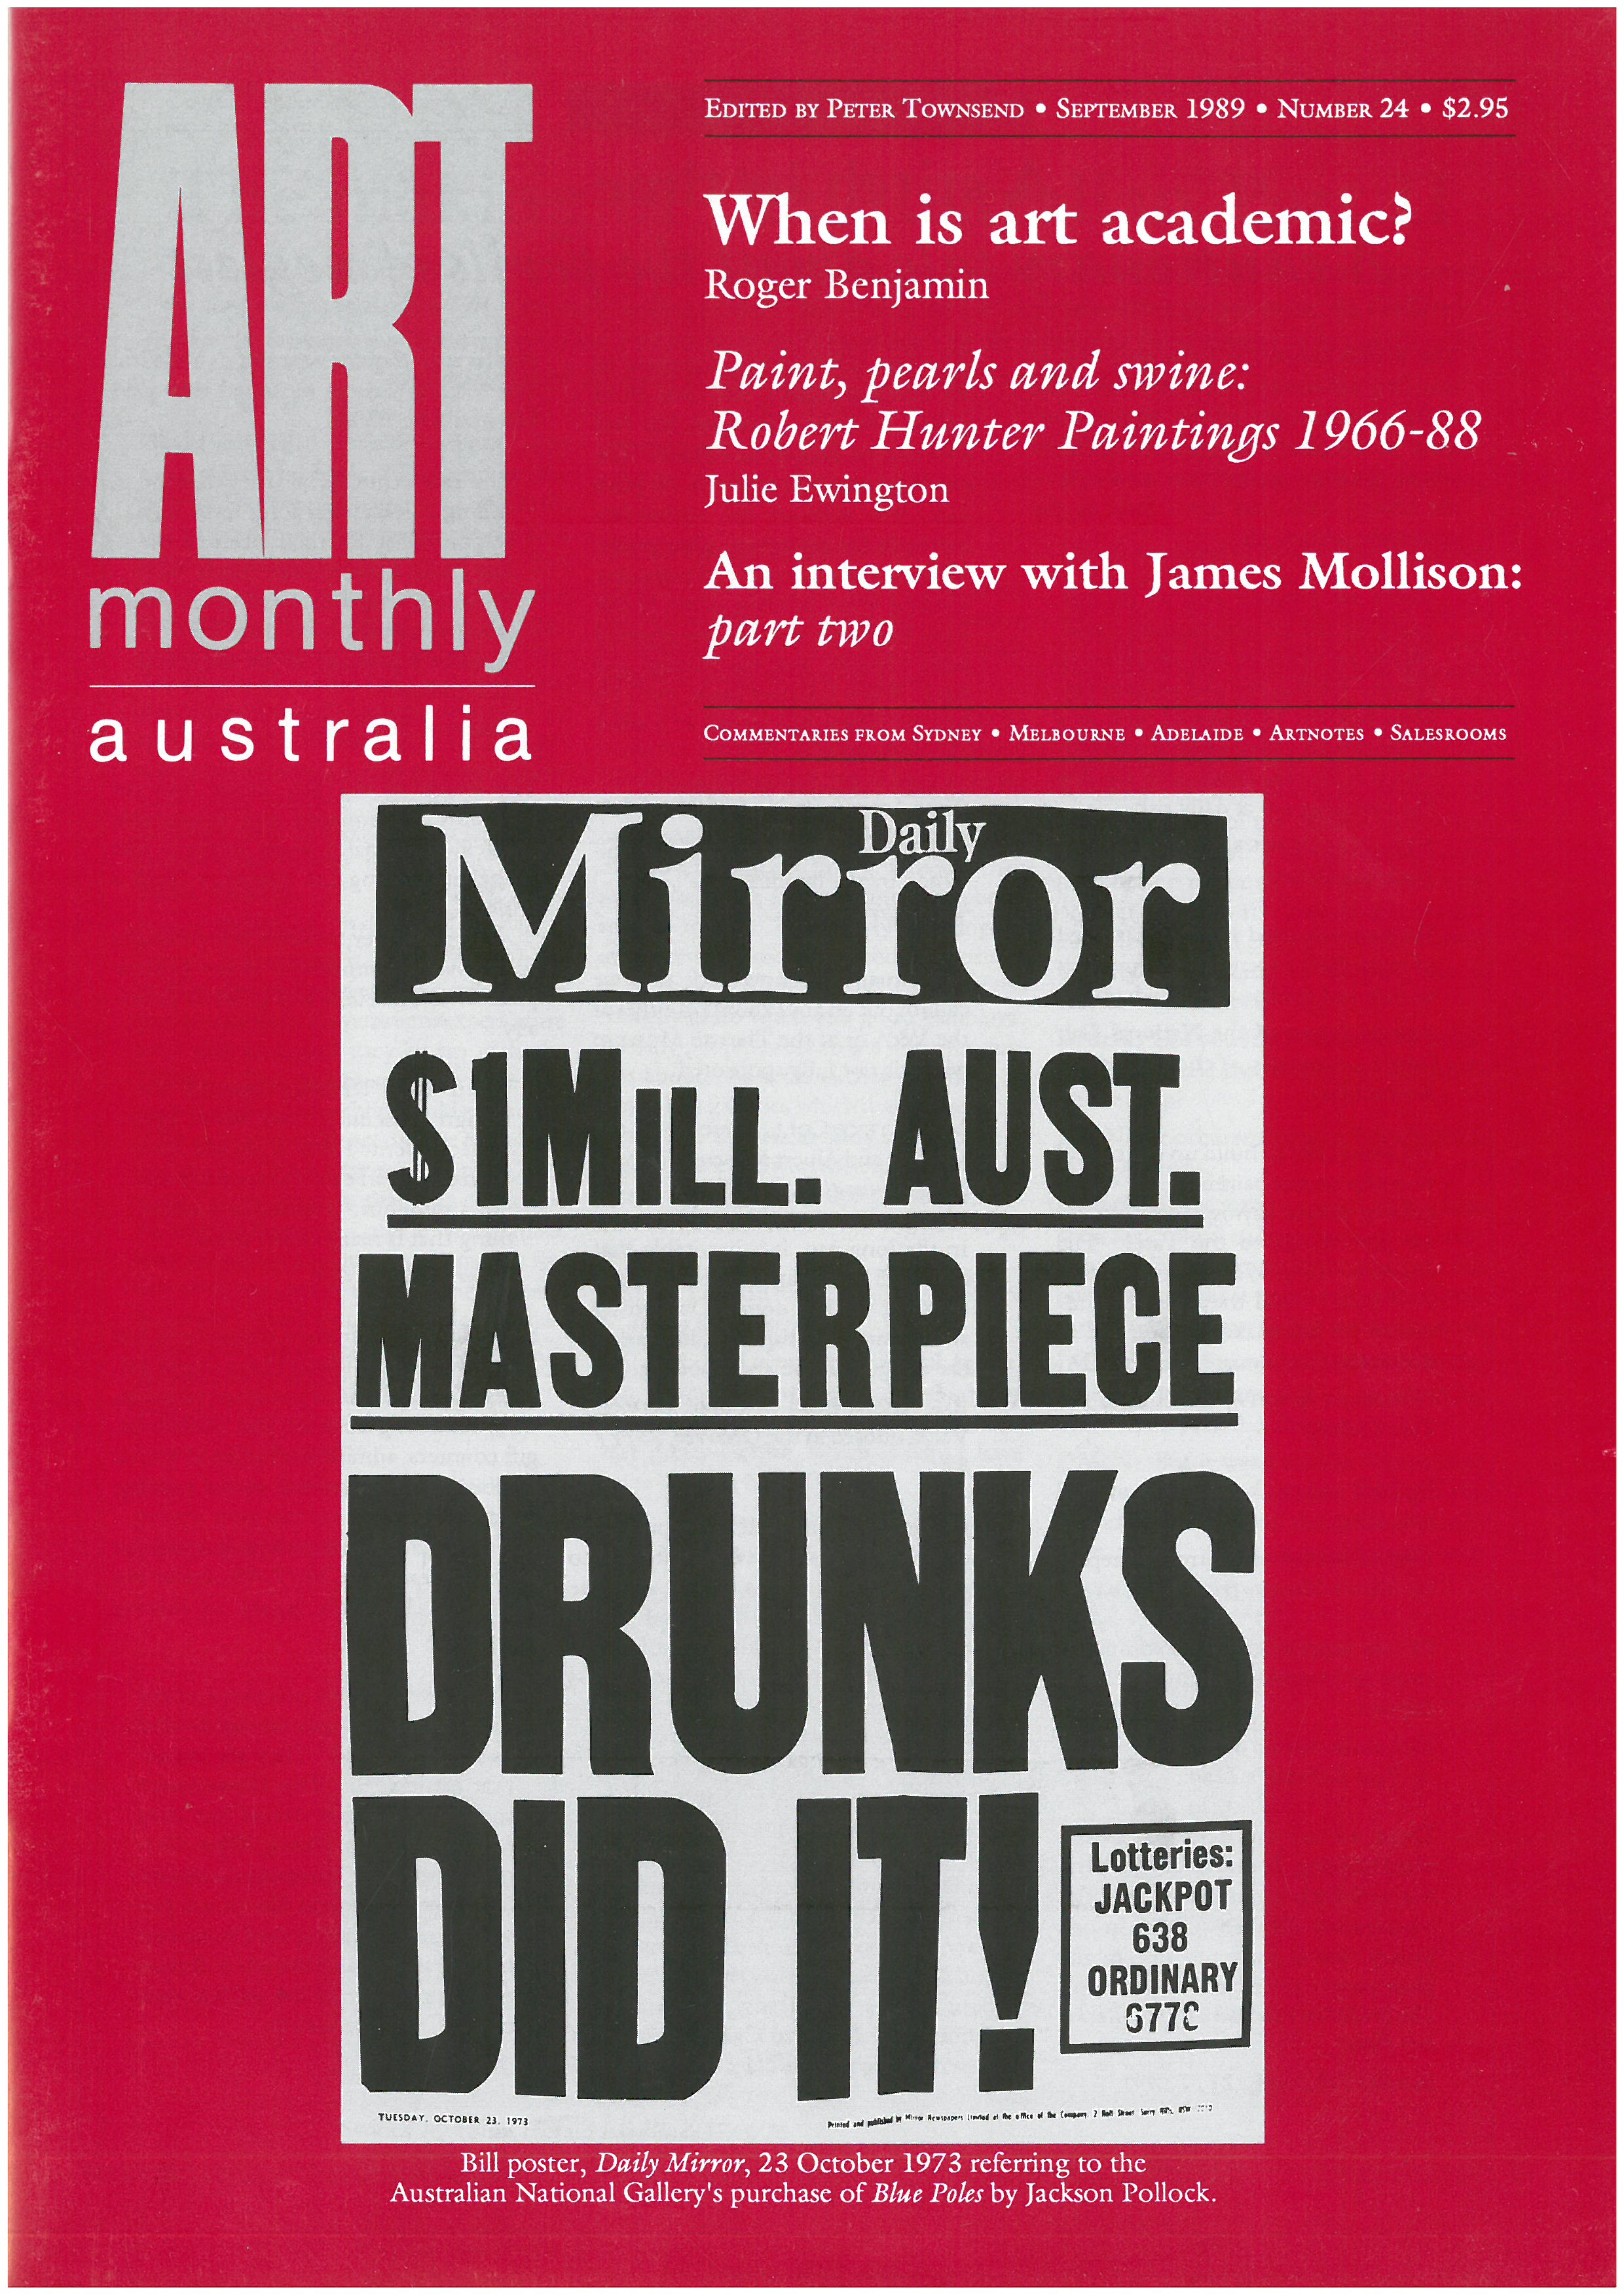 Issue 24 Sept 1989